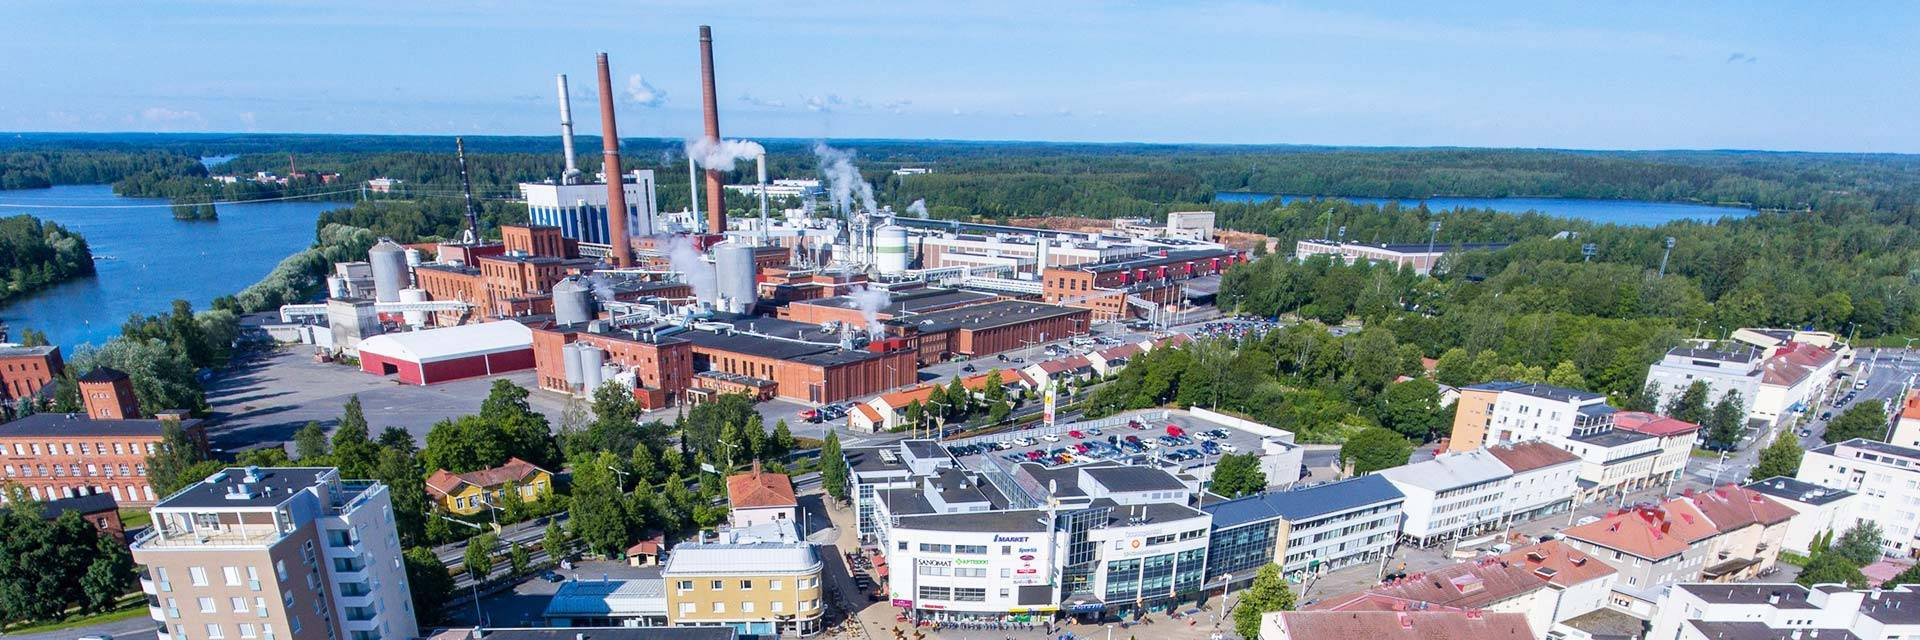 view from above of the city centre of Valkeakoski